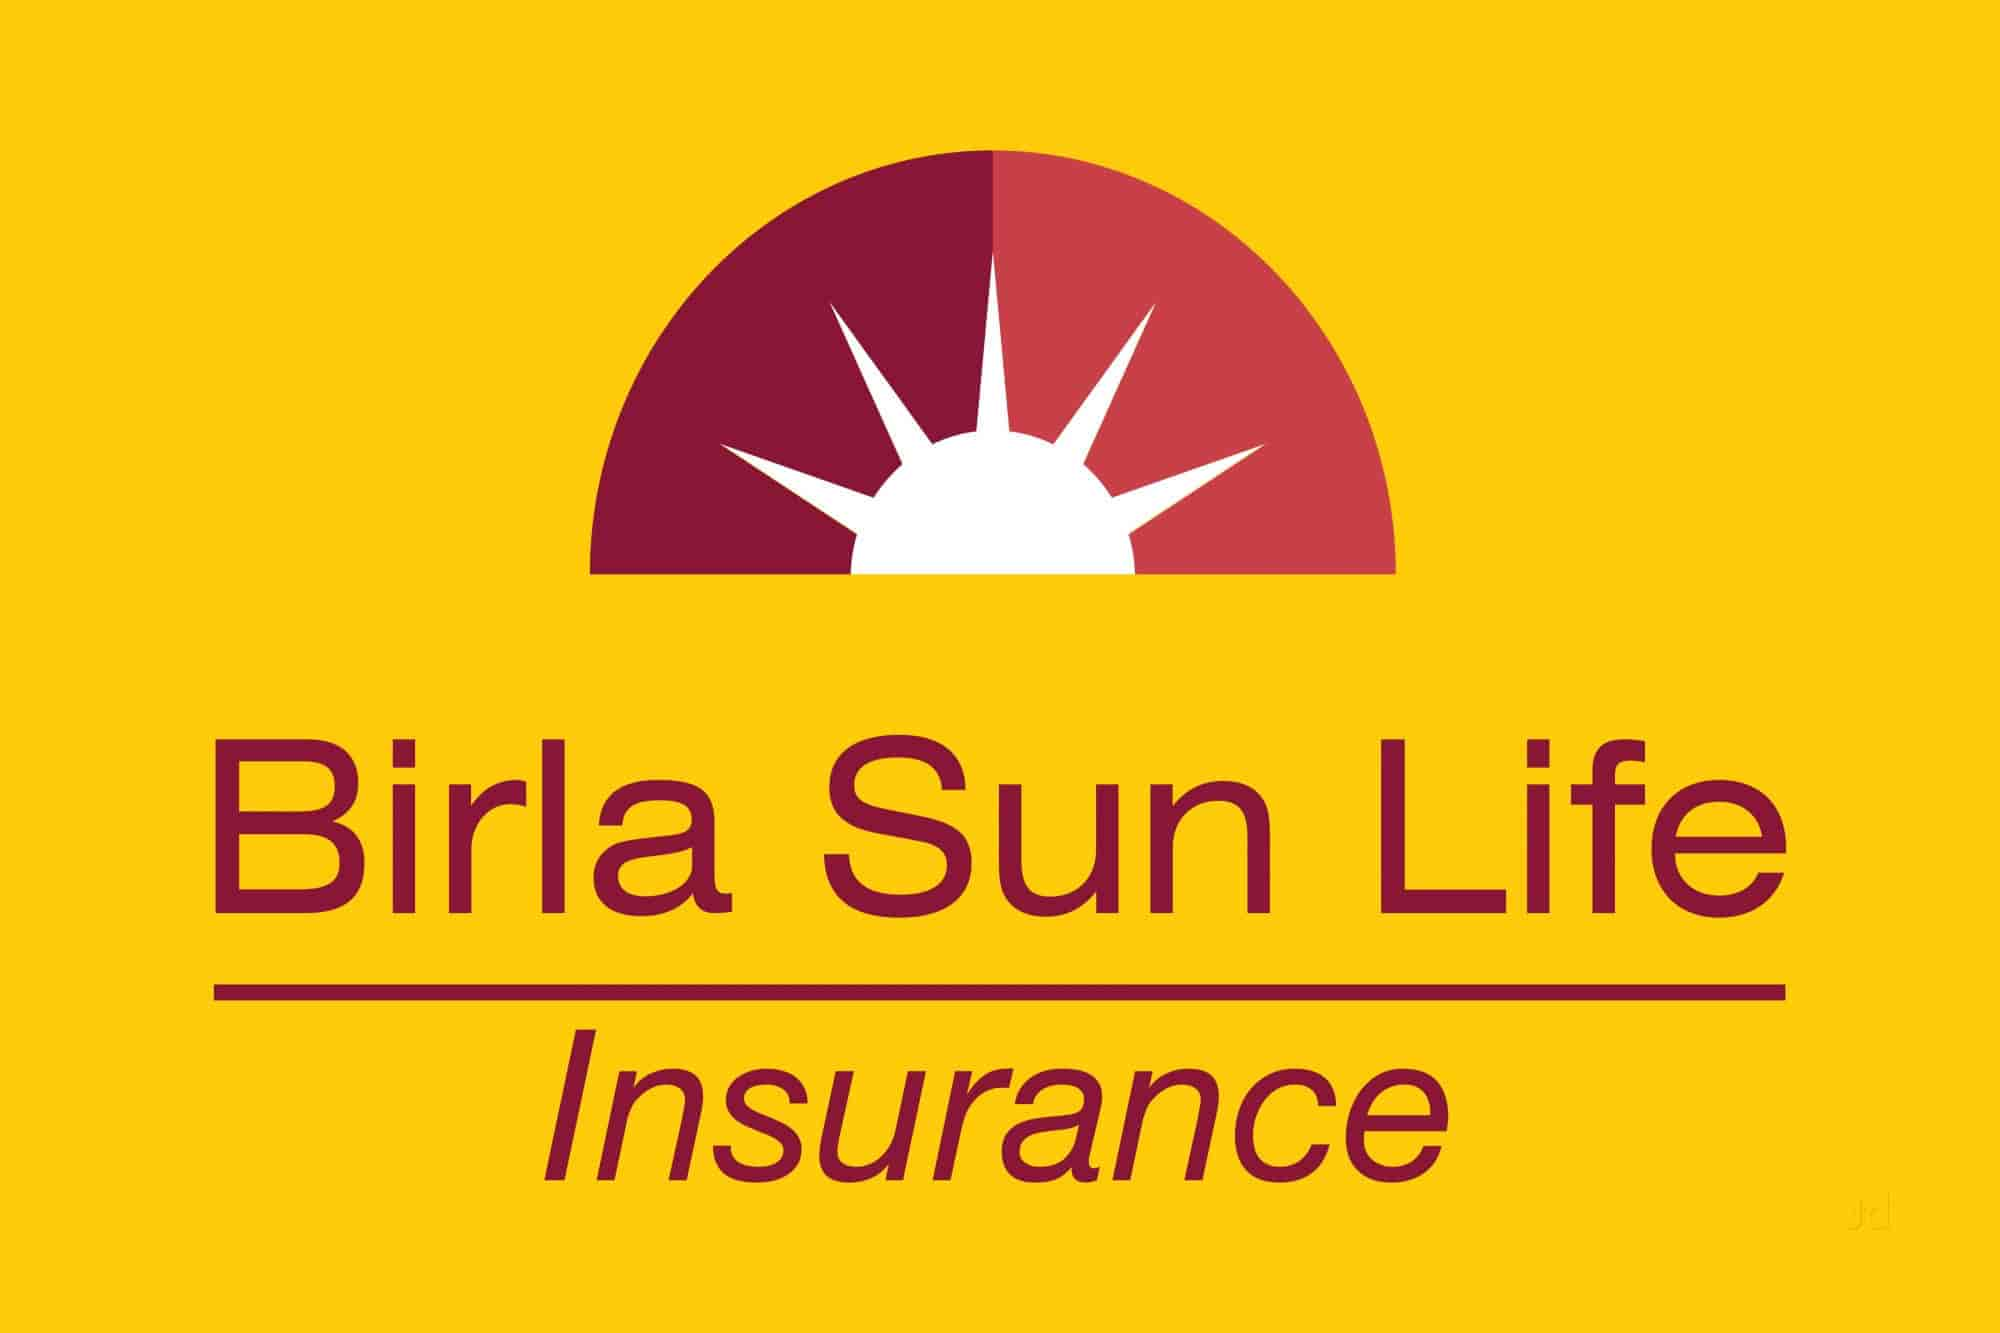 Sunlife Life Insurance Quote Unique Birla Sun Life Insurance Udhana Darwaja  Insurance Companies In